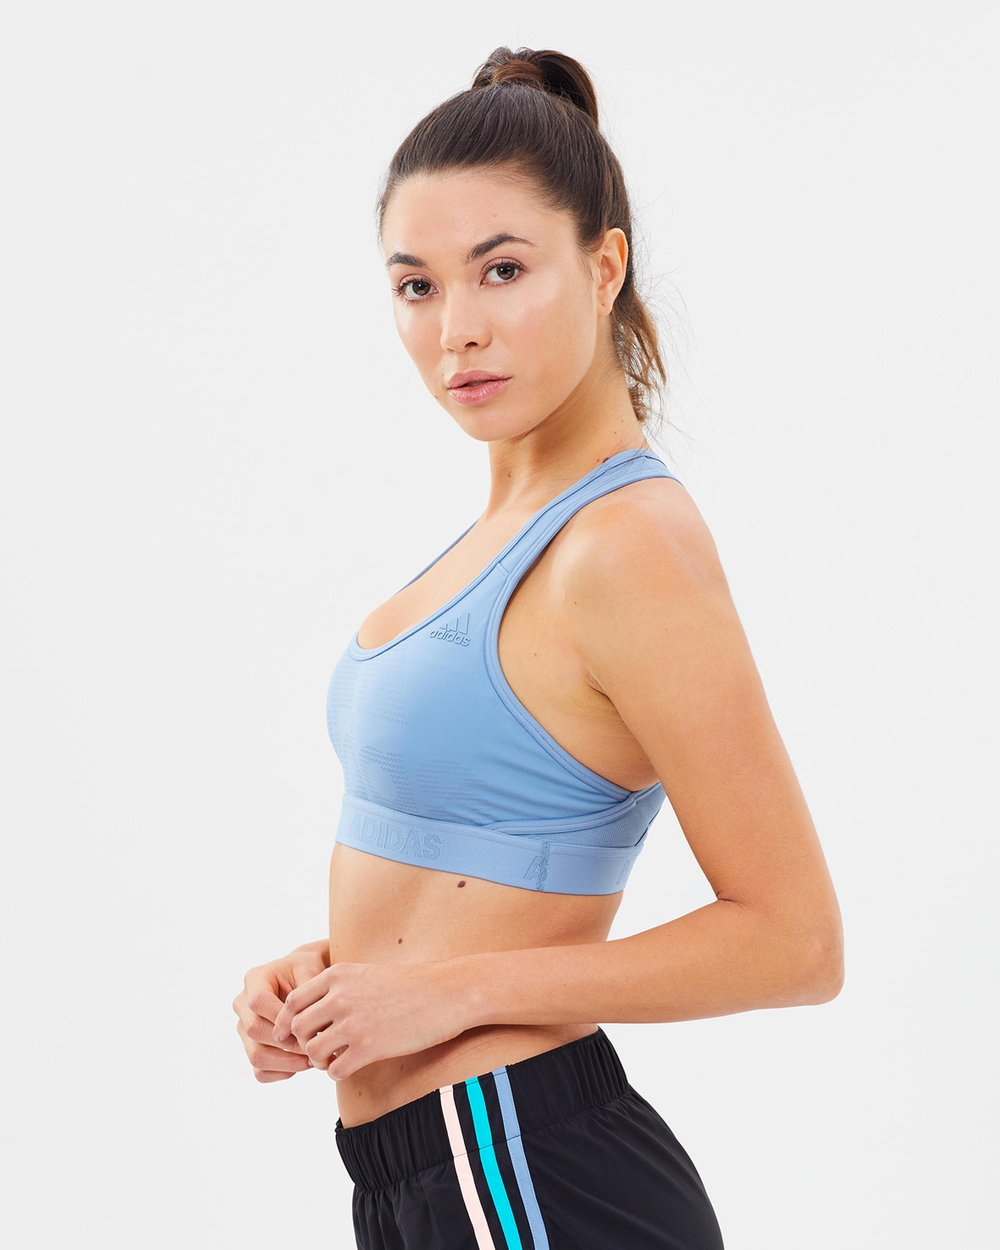 bfdca50e25a51 Alphaskin Sports Bra by adidas Performance Online